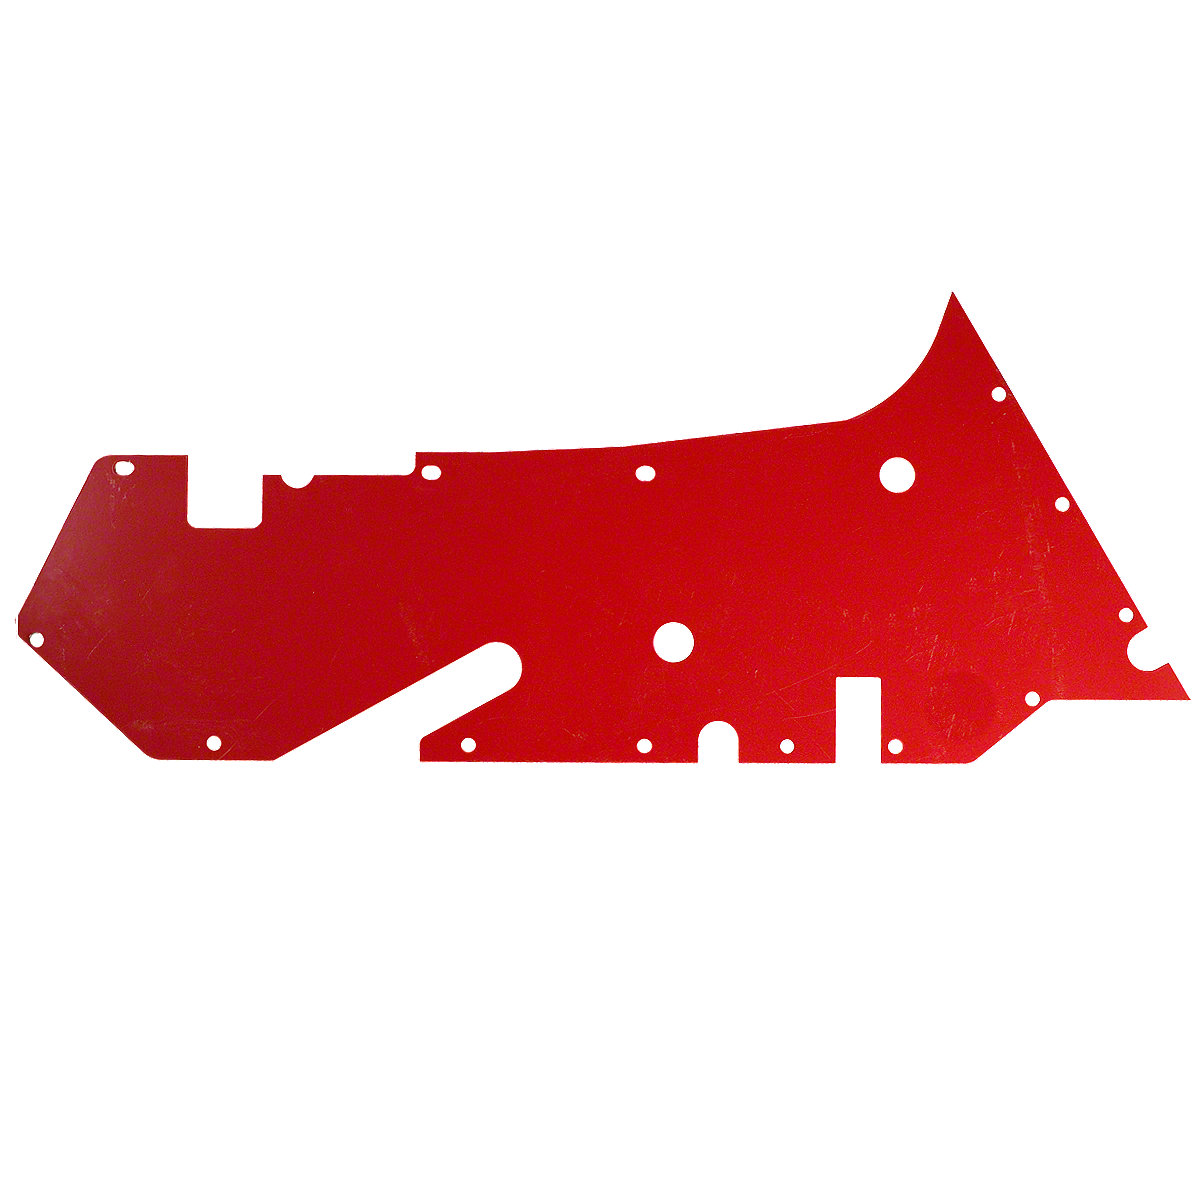 Left Hand Side Panel Without Choke Rod Slot For Allis Chalmers: D14, D15,.